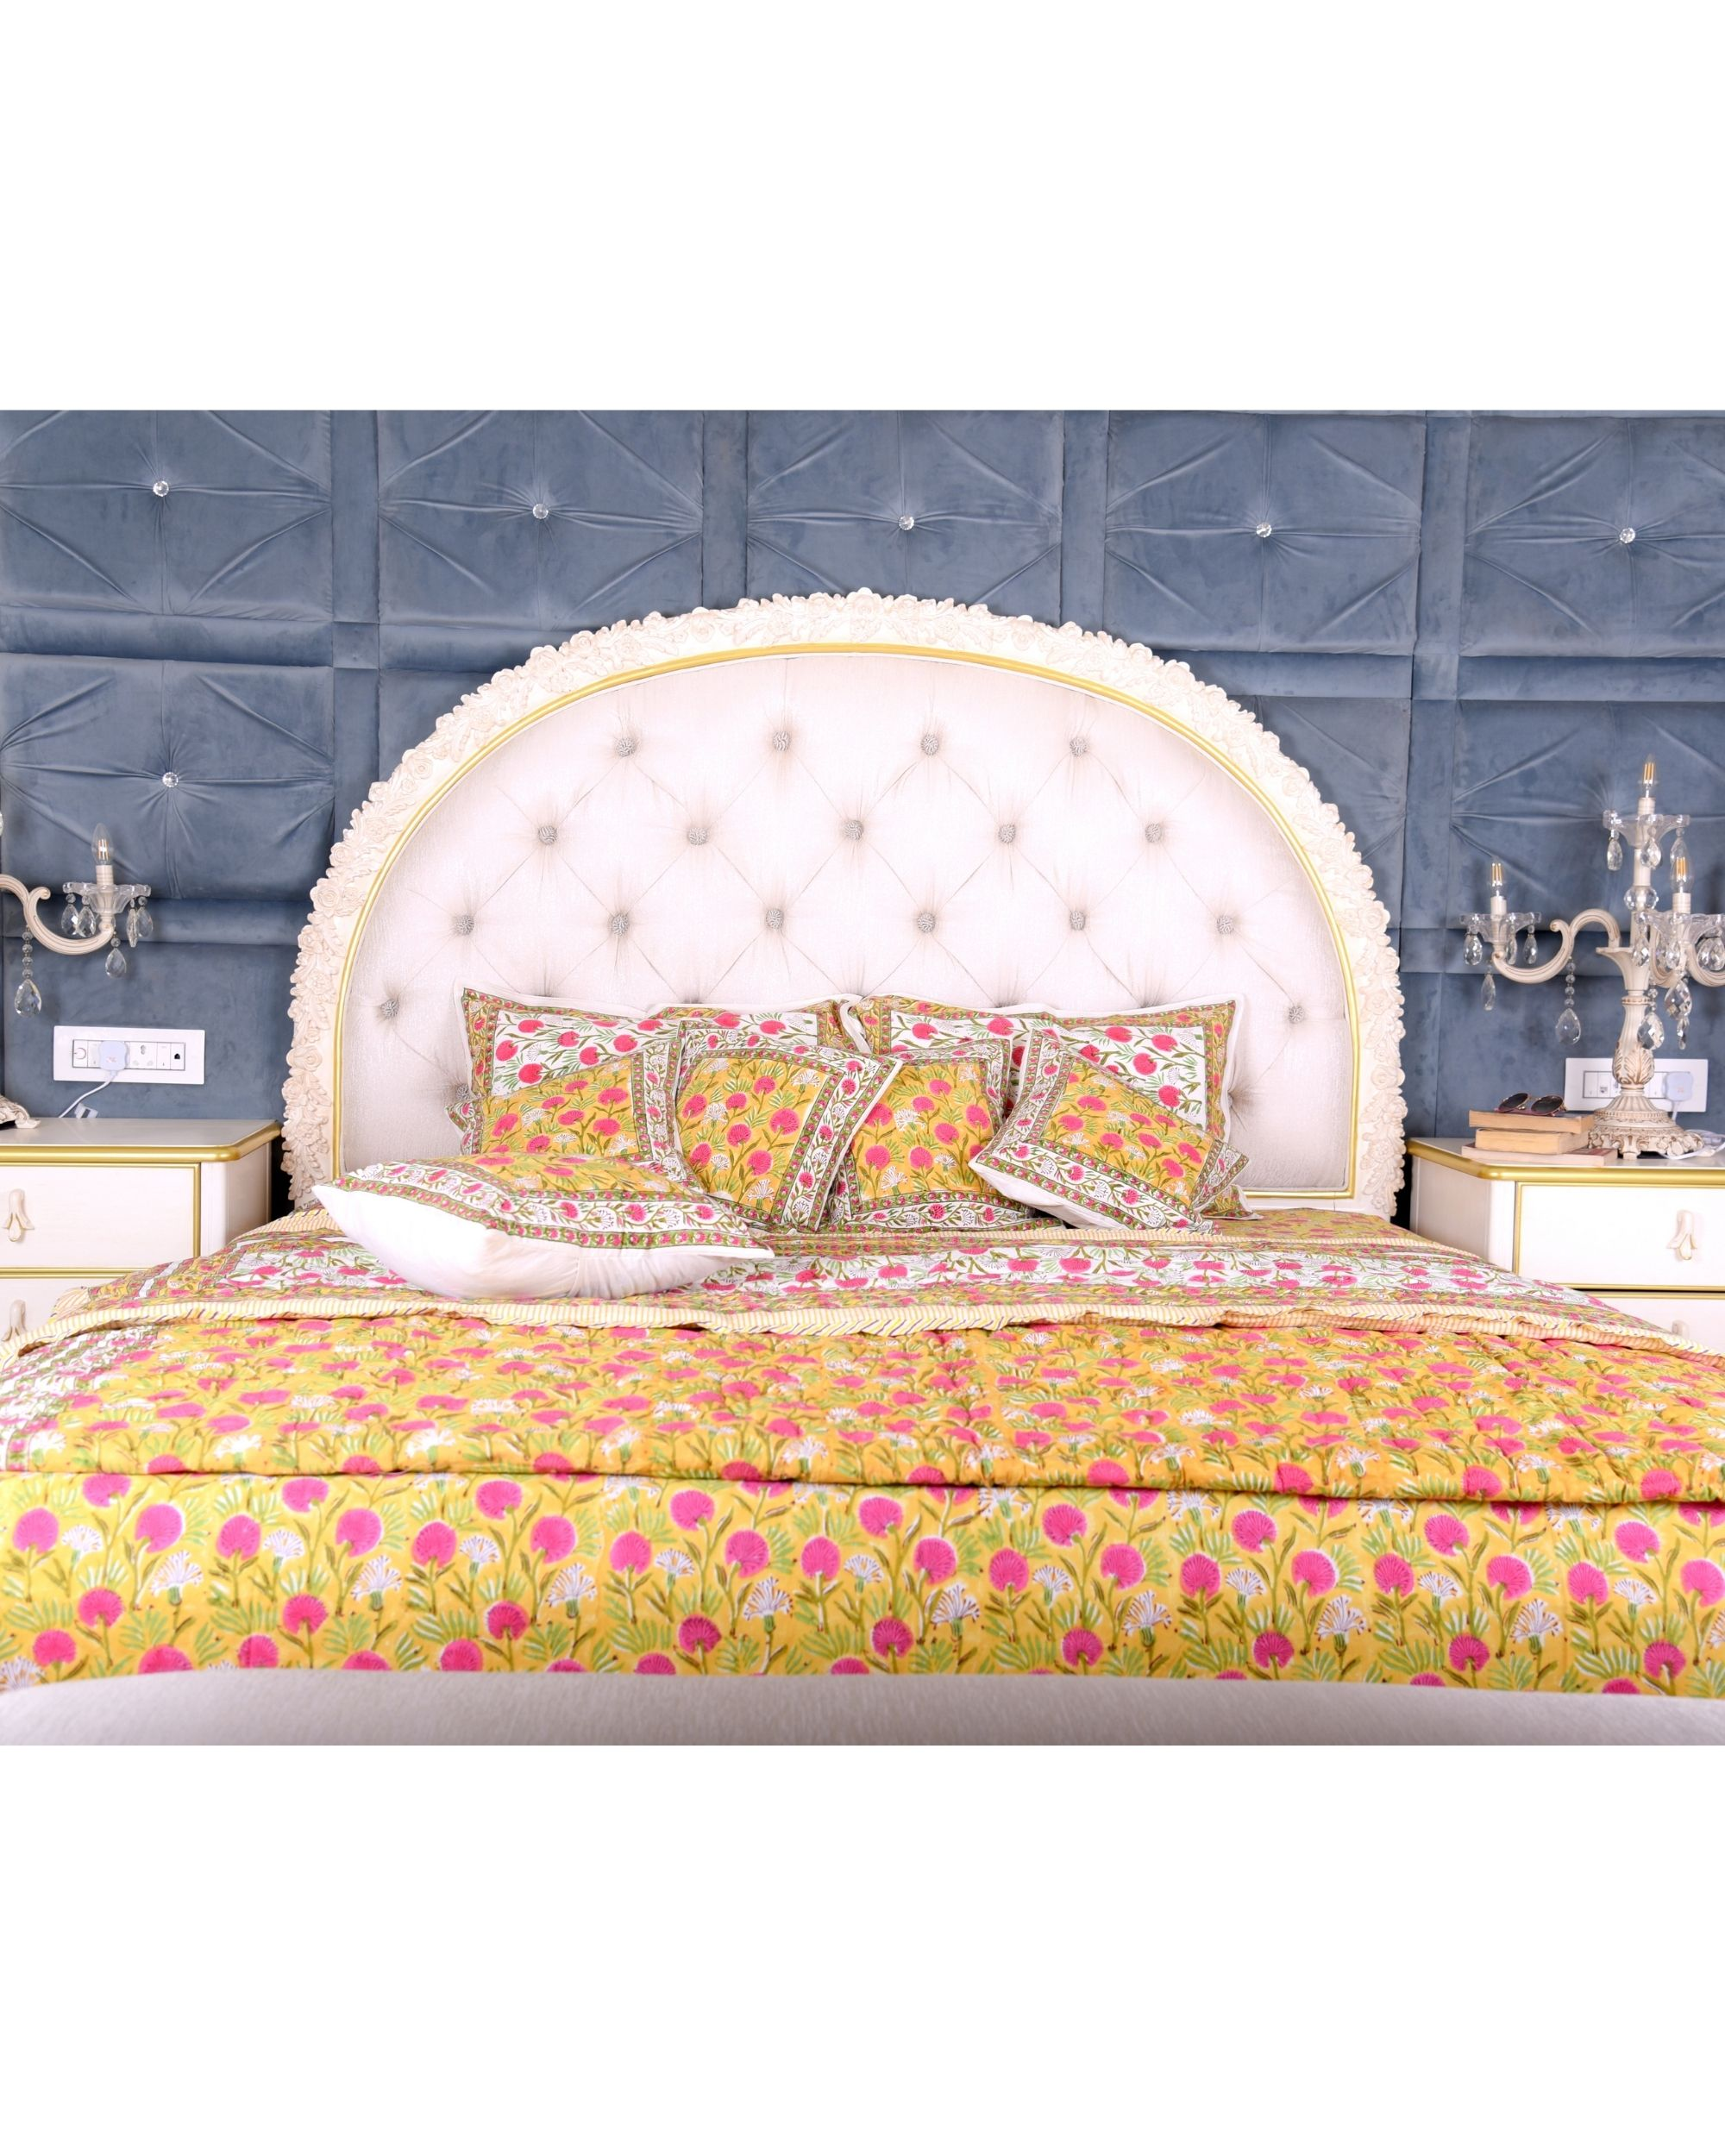 Yellow and pink floral king size bed sheet